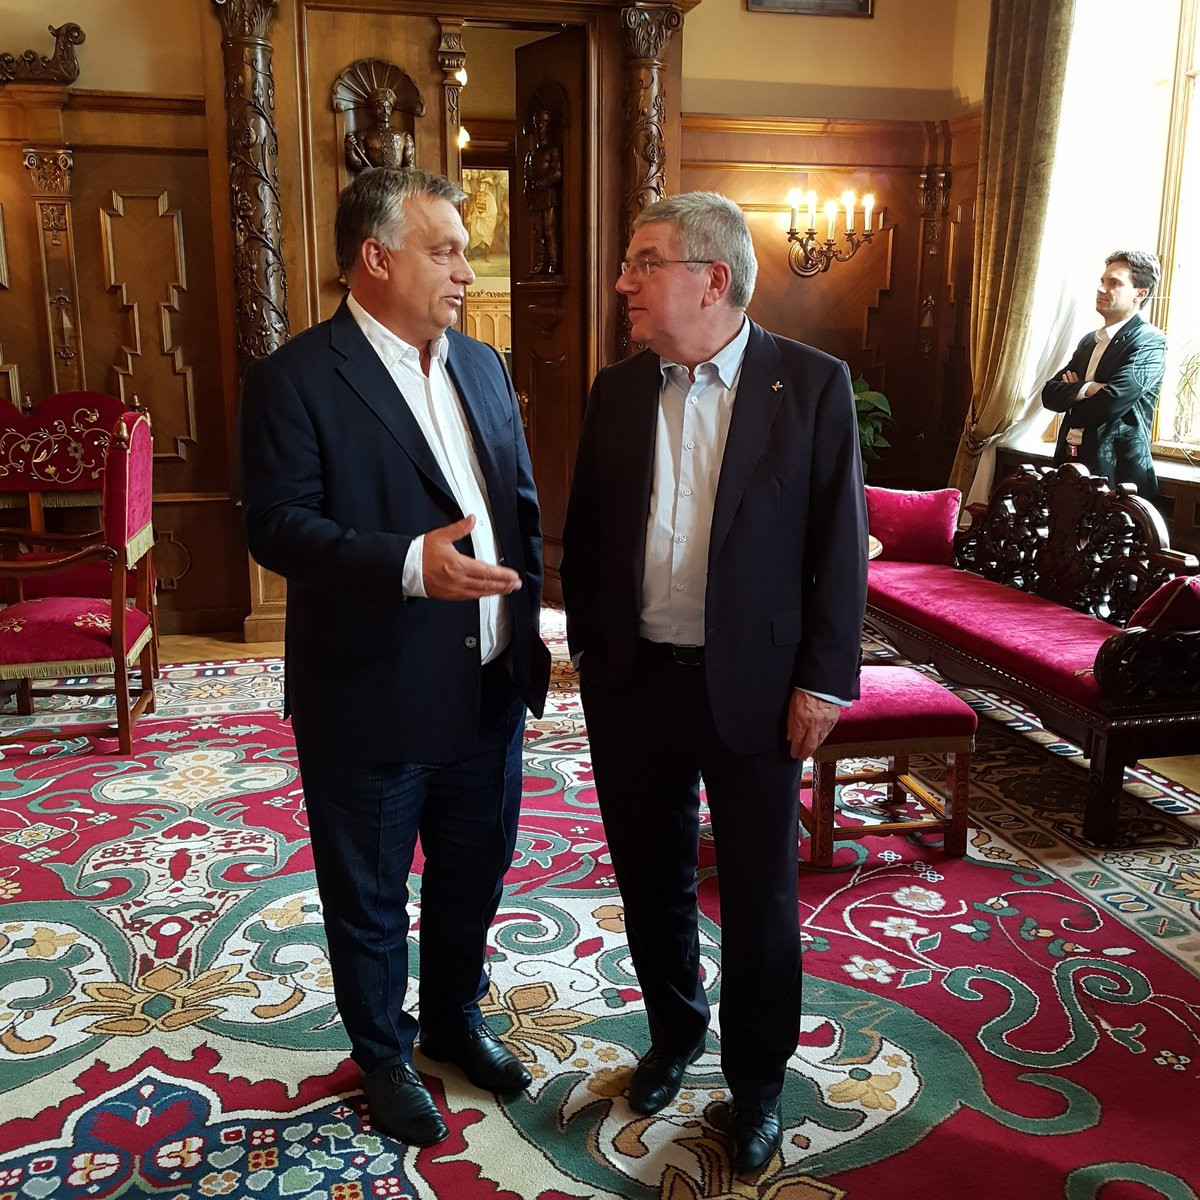 Thomas Bach also met with Hungarian Prime Minister Viktor Orbán during his visit to Budapest ©IOC